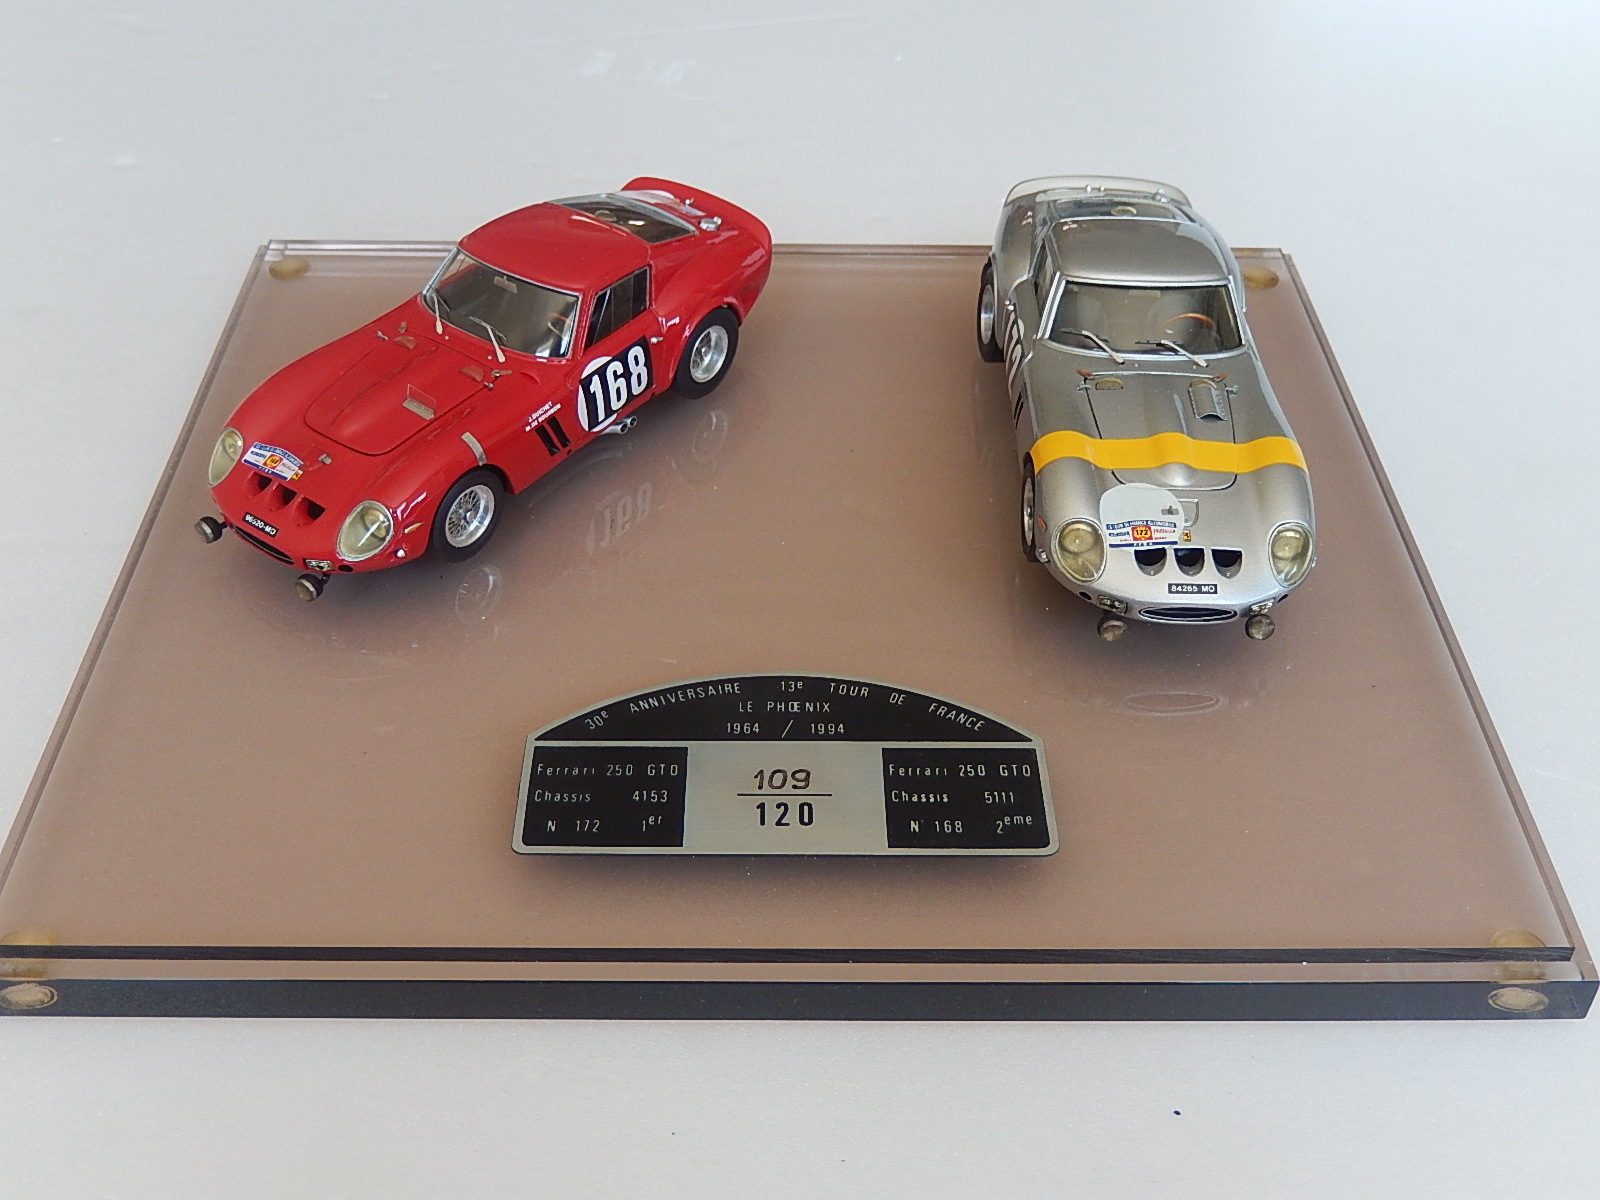 AM Ruf : Ferrari 250 GTO Tour de France 1964 set